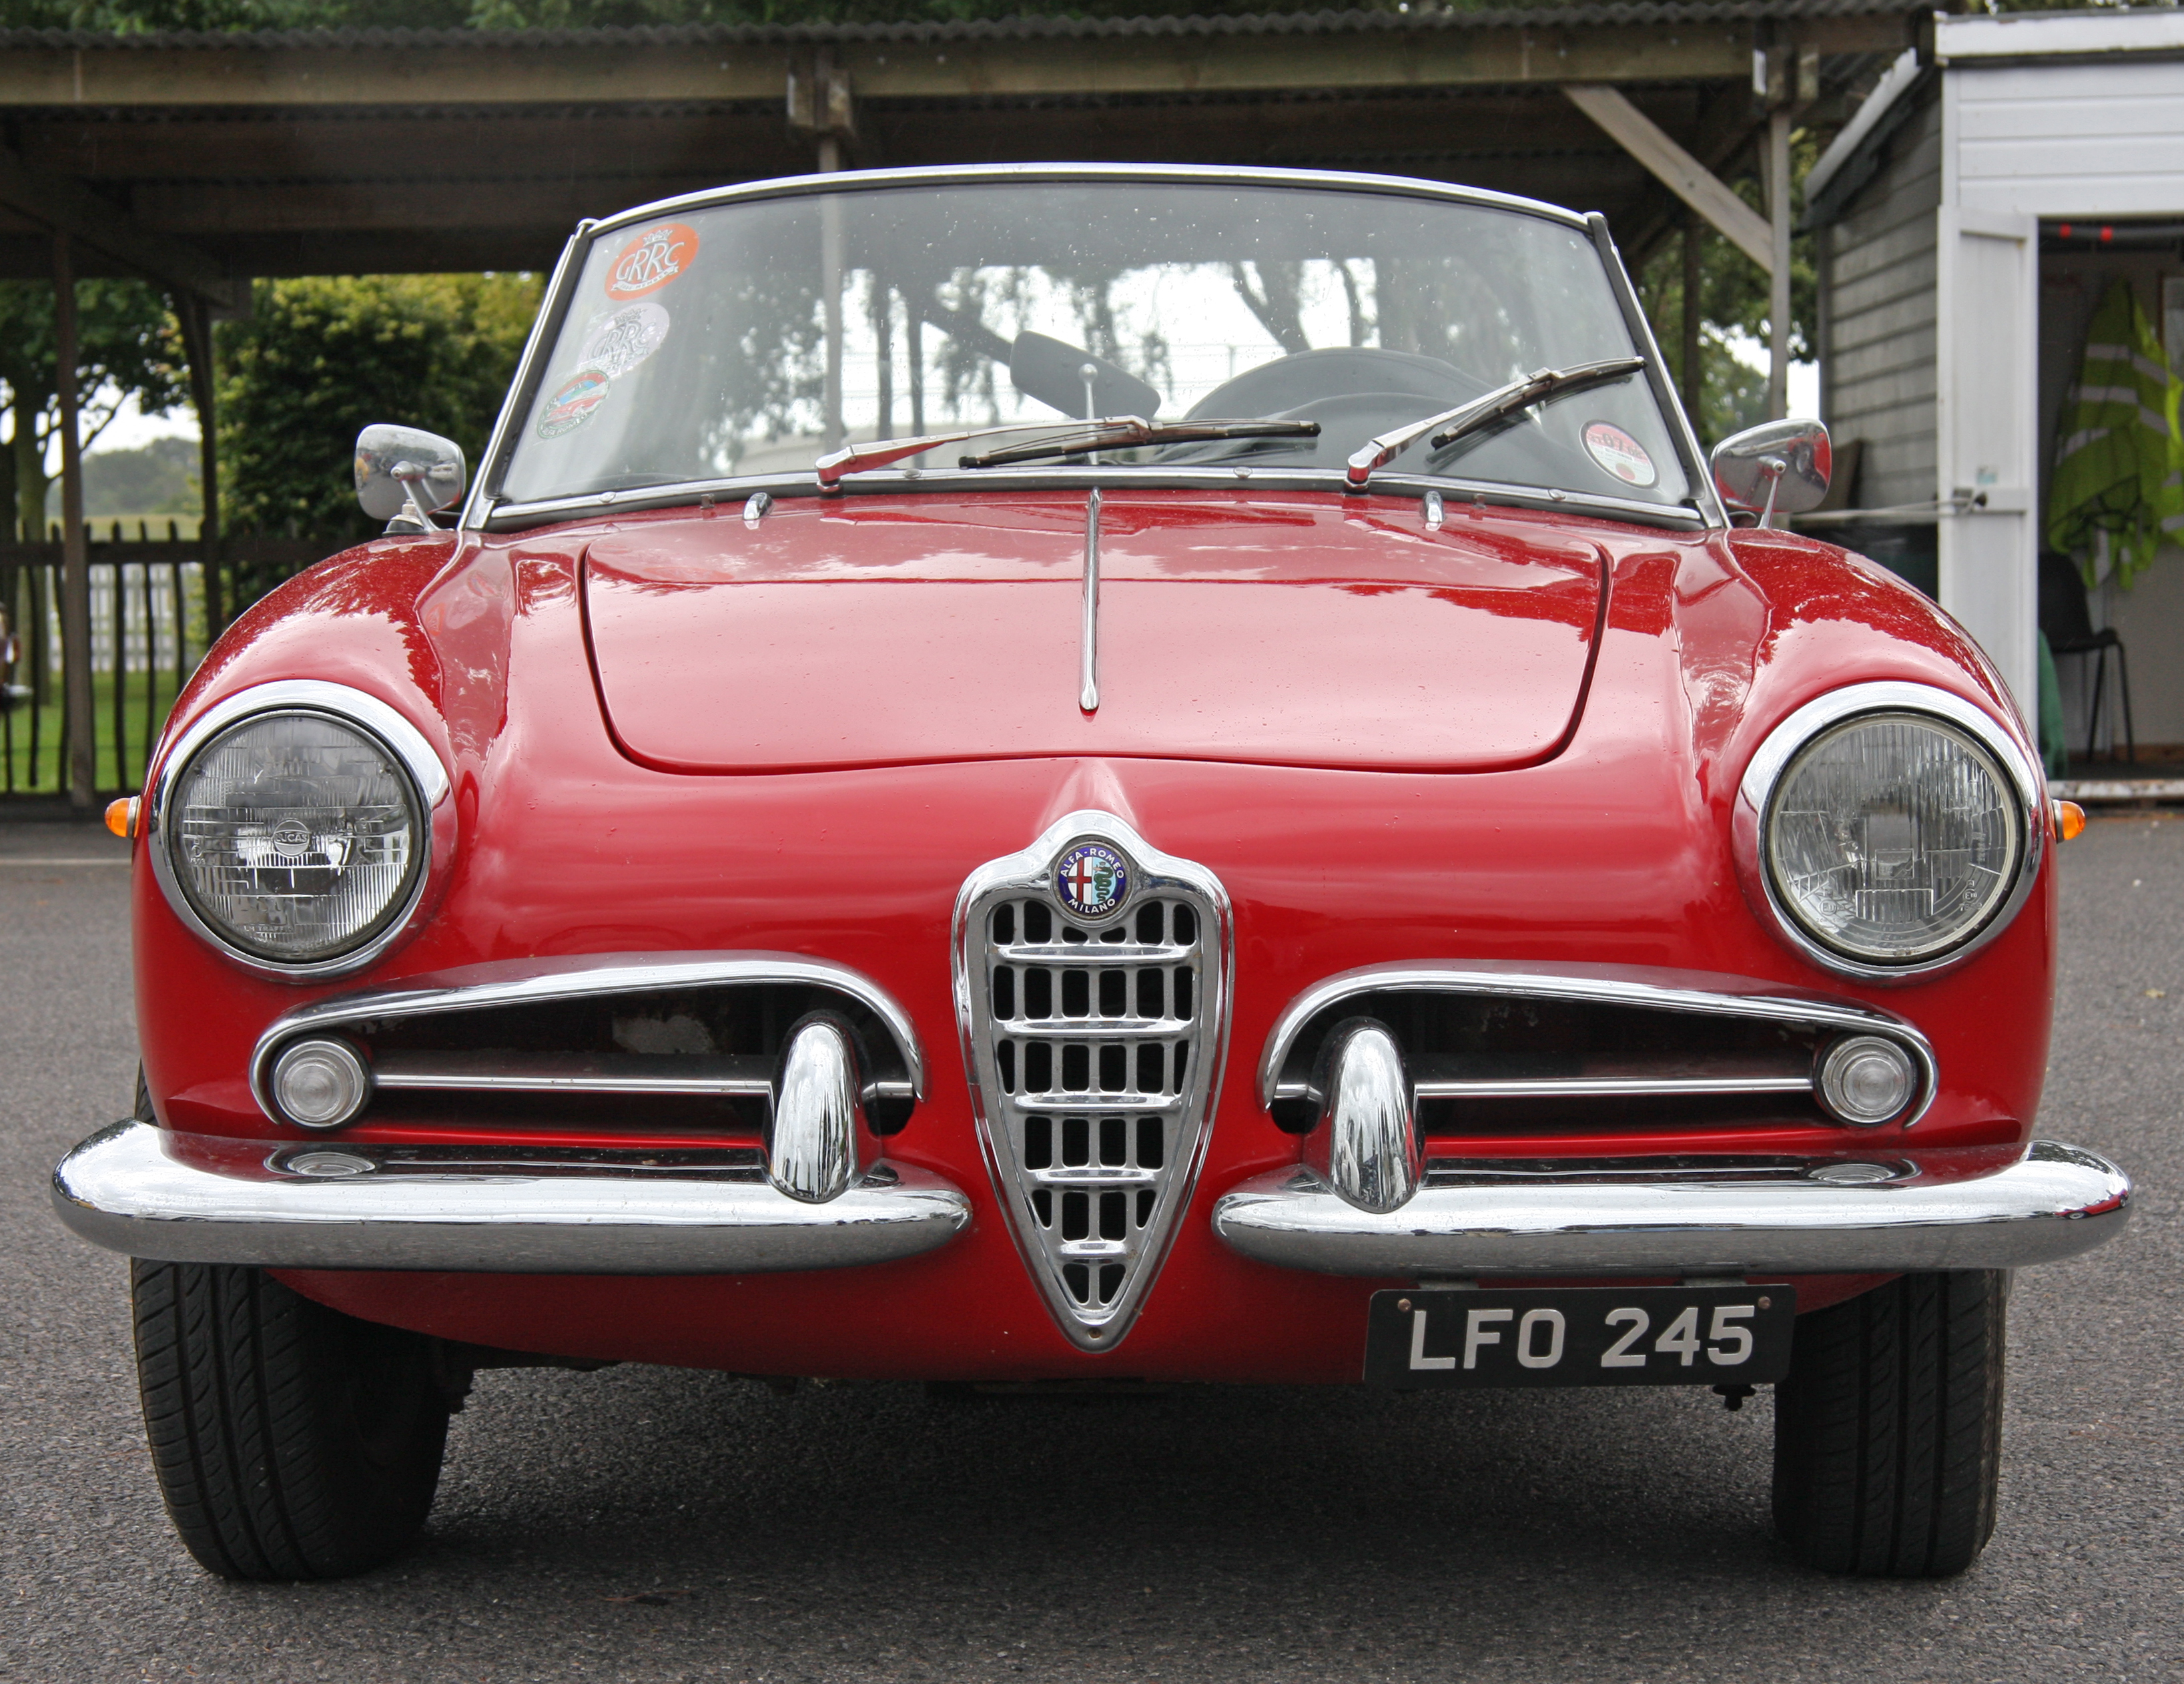 1000 images about 1960s alfa romeo giulietta on pinterest. Black Bedroom Furniture Sets. Home Design Ideas